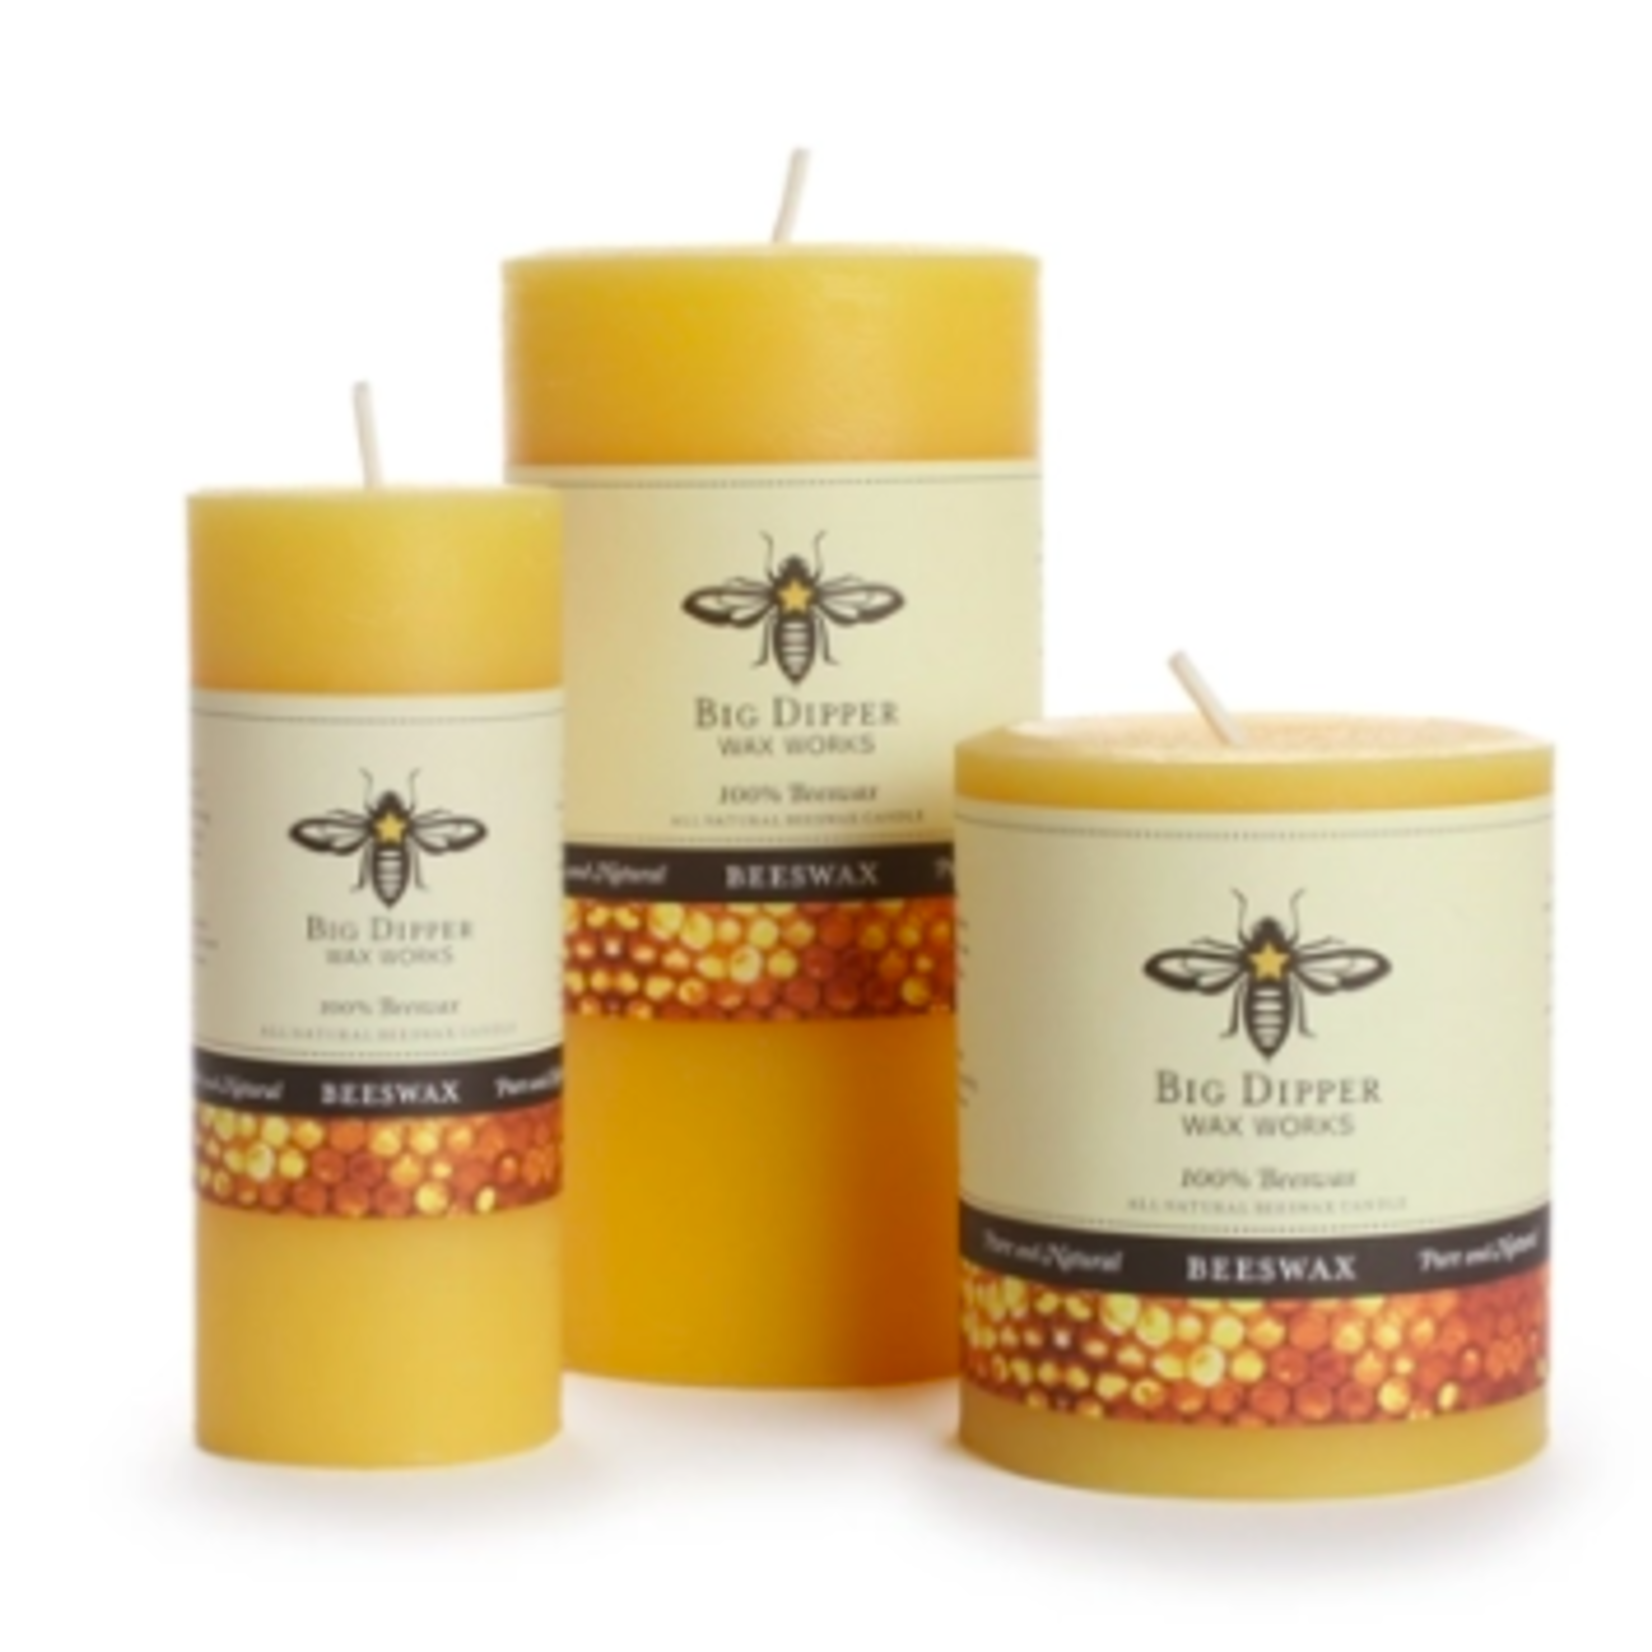 Big Dipper 100% Pure Beeswax Candles